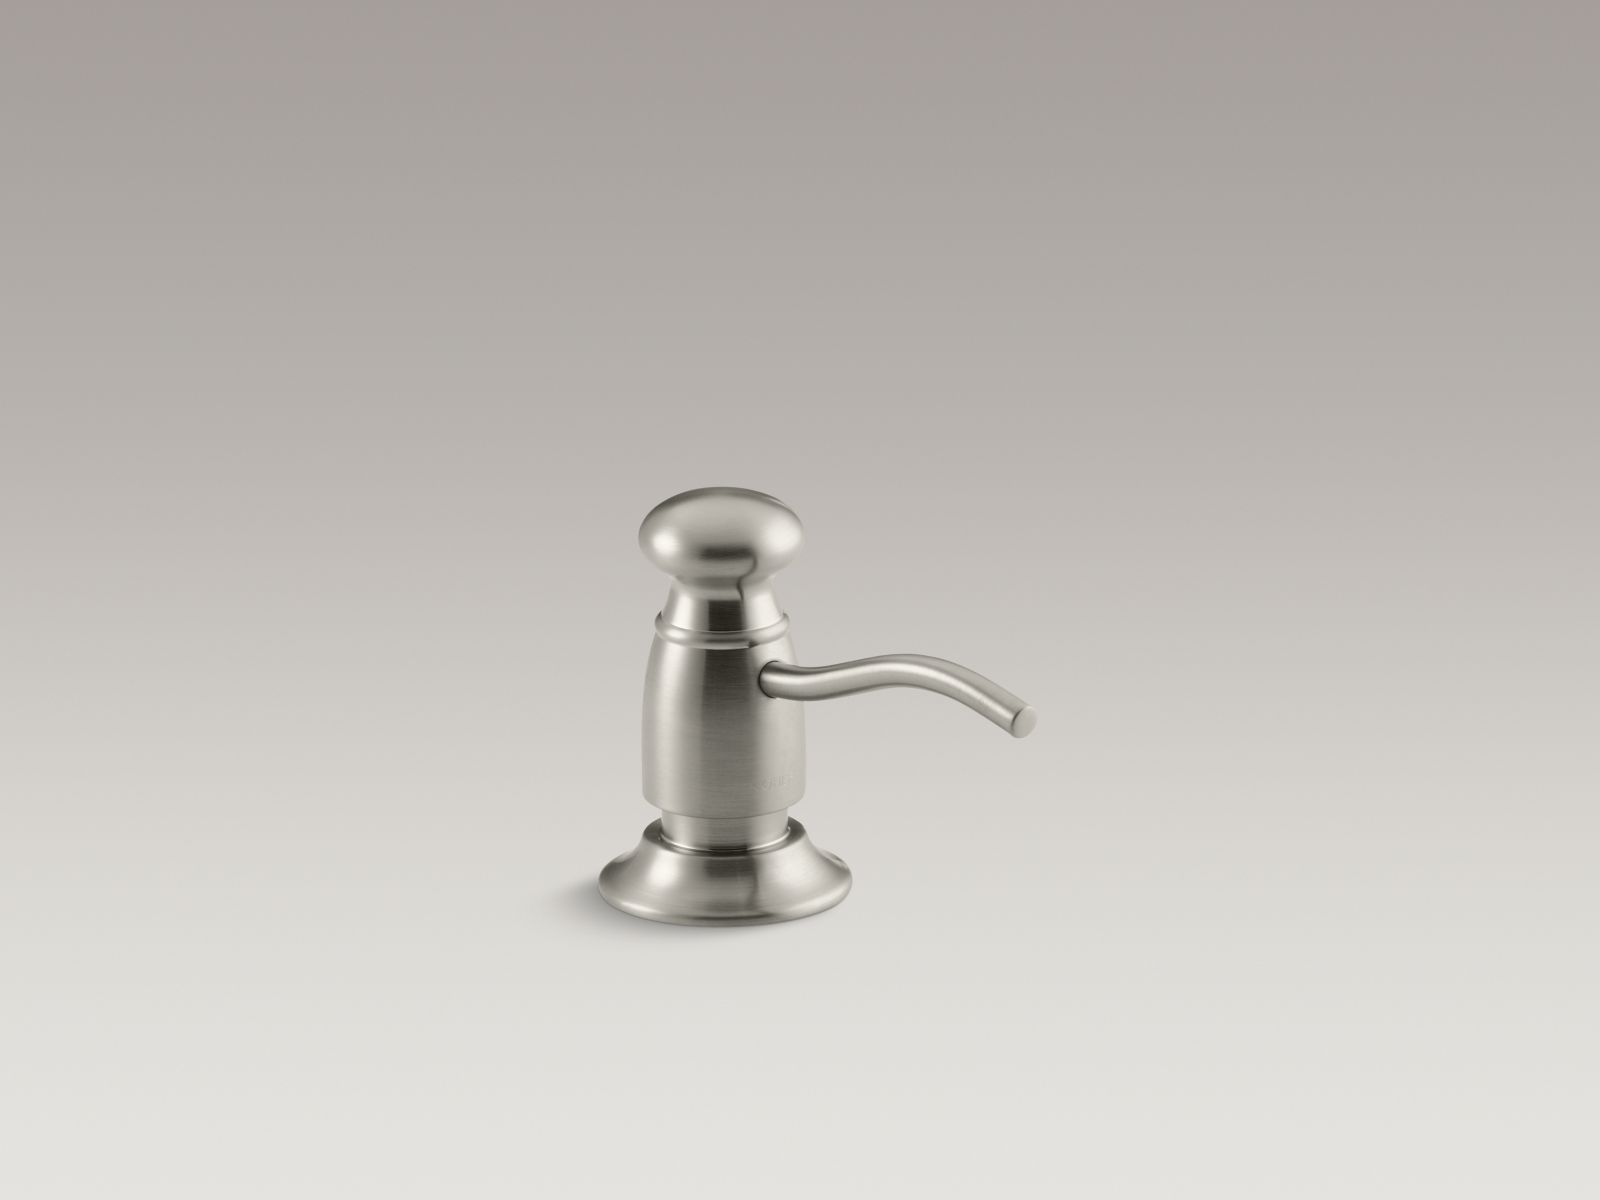 Kohler K-1894-C-BN Traditional Clam Shell Packed Soap or Lotion Dispenser Brushed Nickel